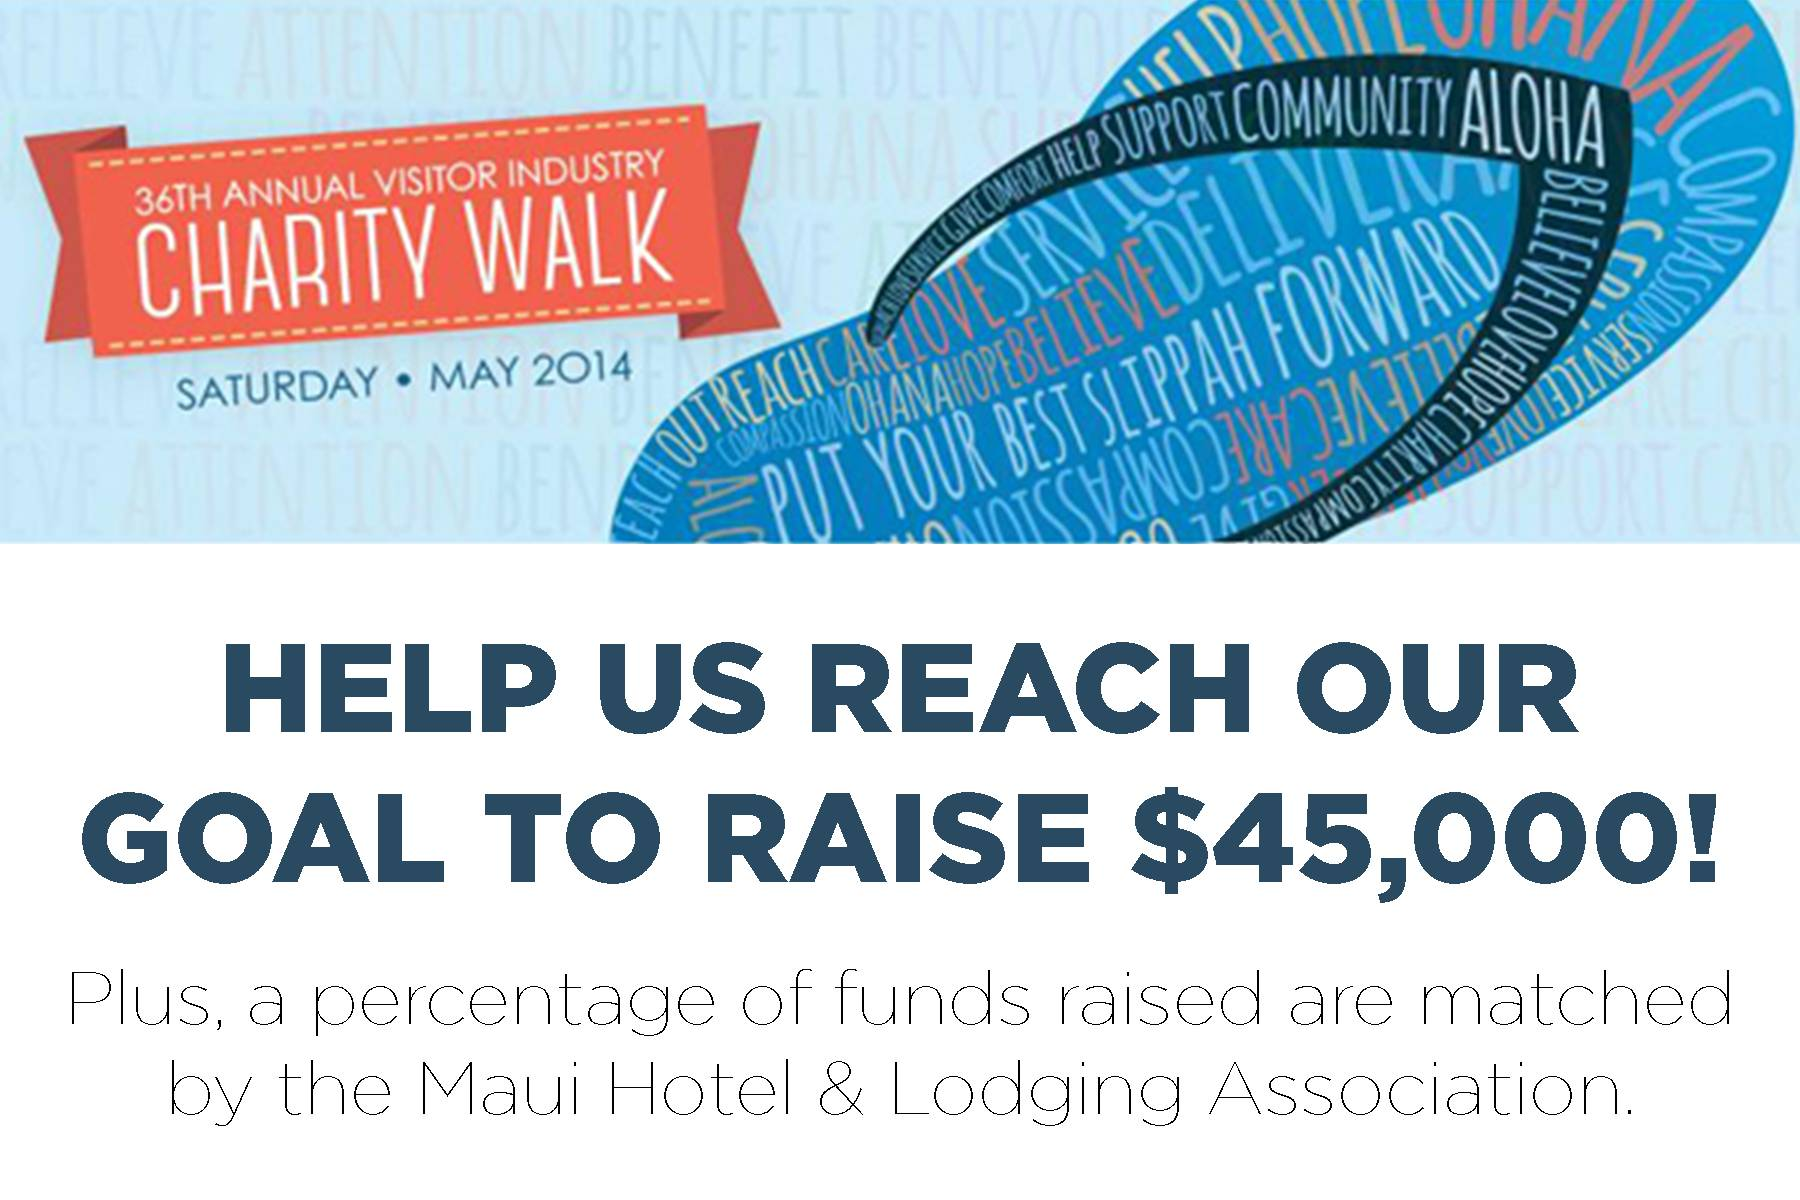 Charity Walk Hawaii Industry Charity Walk is a